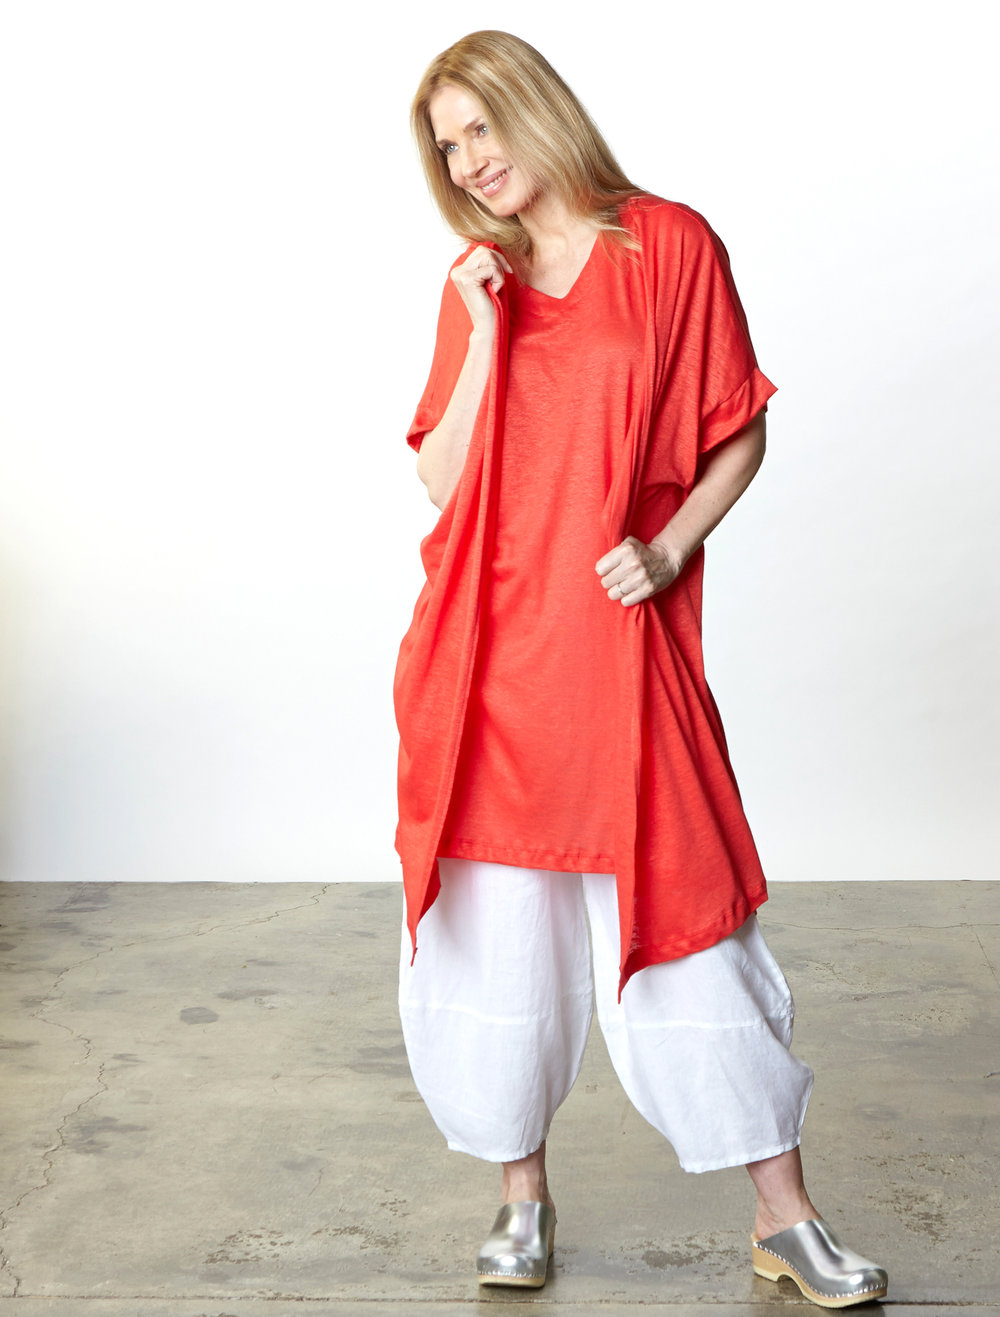 Ezra Cardigan, Sena Tunic in Red Italian Linen Knit, Oliver Pant in White Light Linen